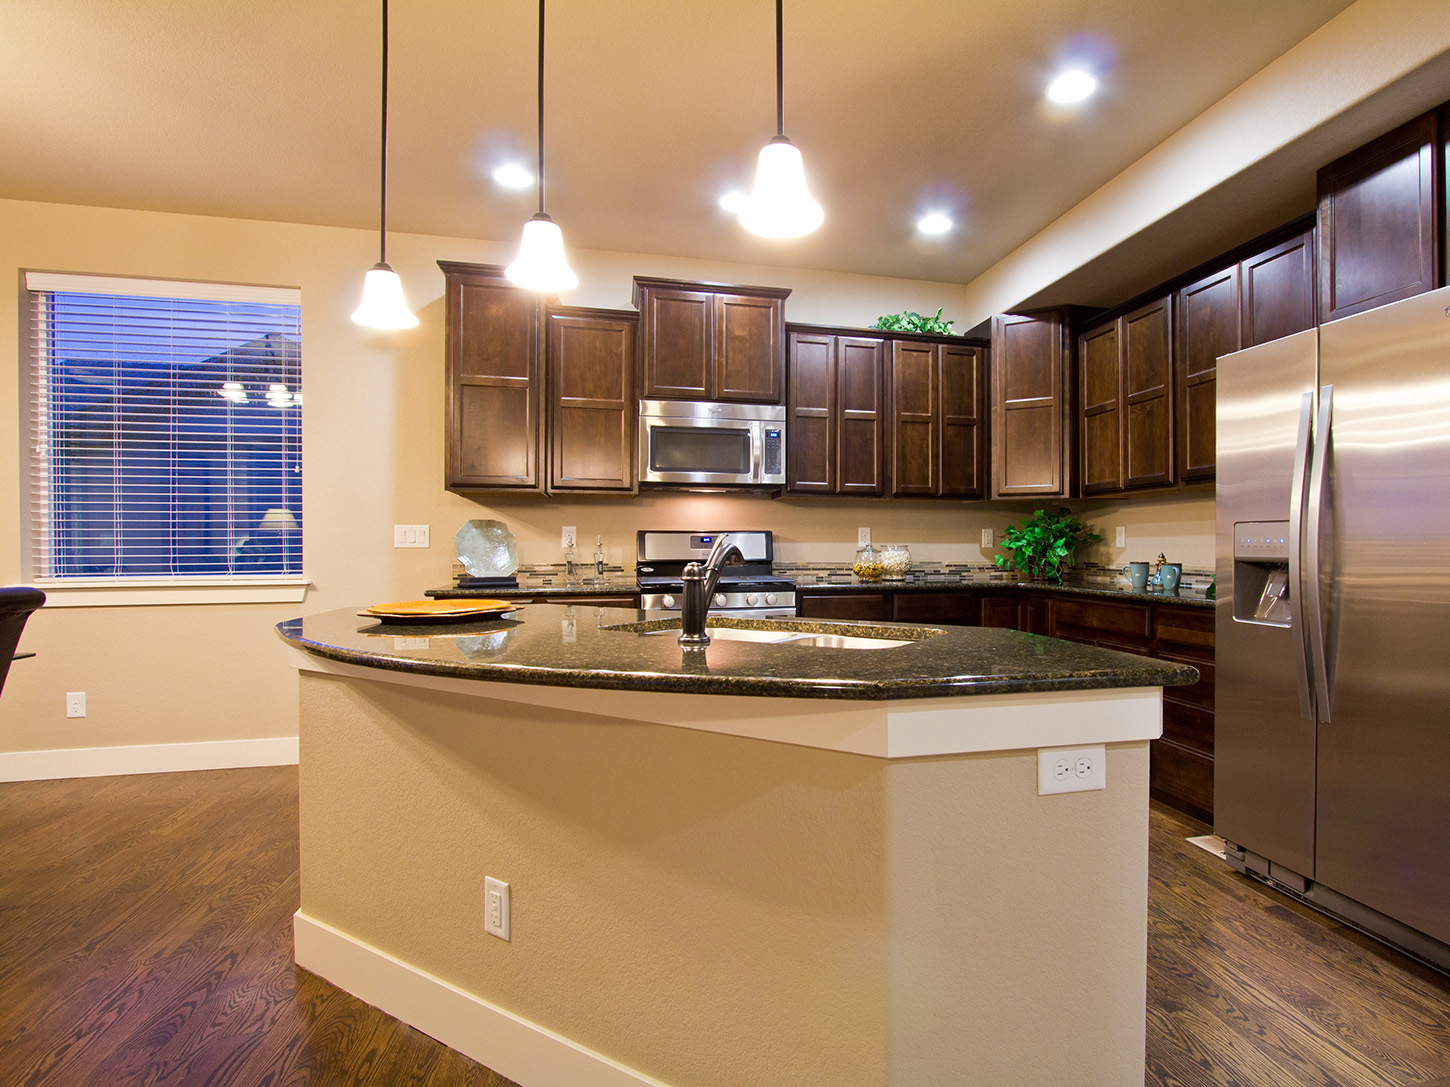 07-glendale-fort_collins-kitchen-new_homes_for_sale